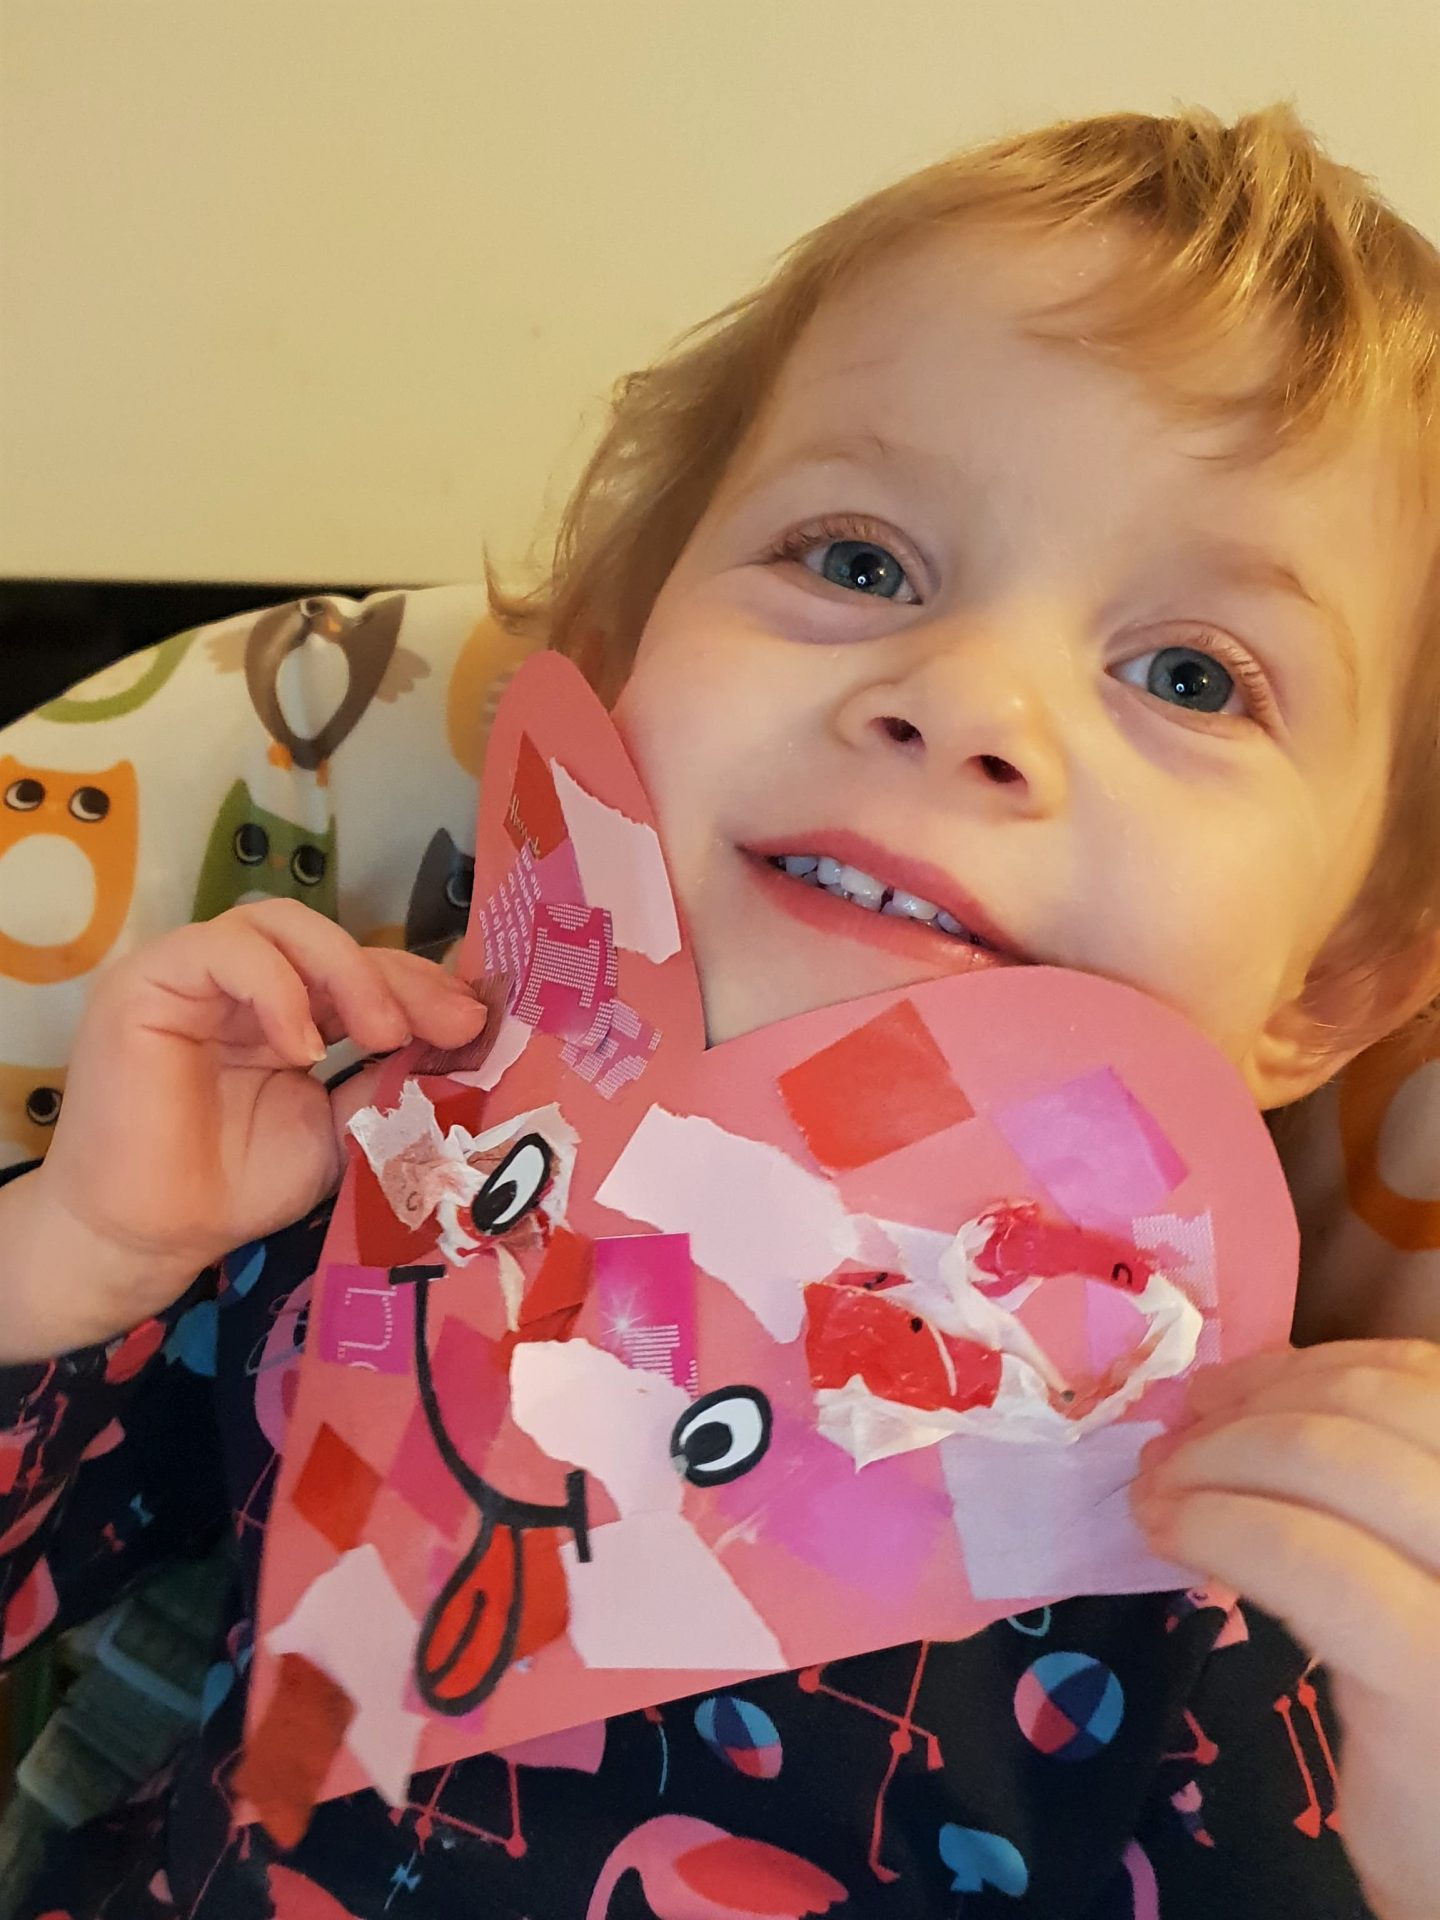 Toddler Valentine's Day versatile heart face craft